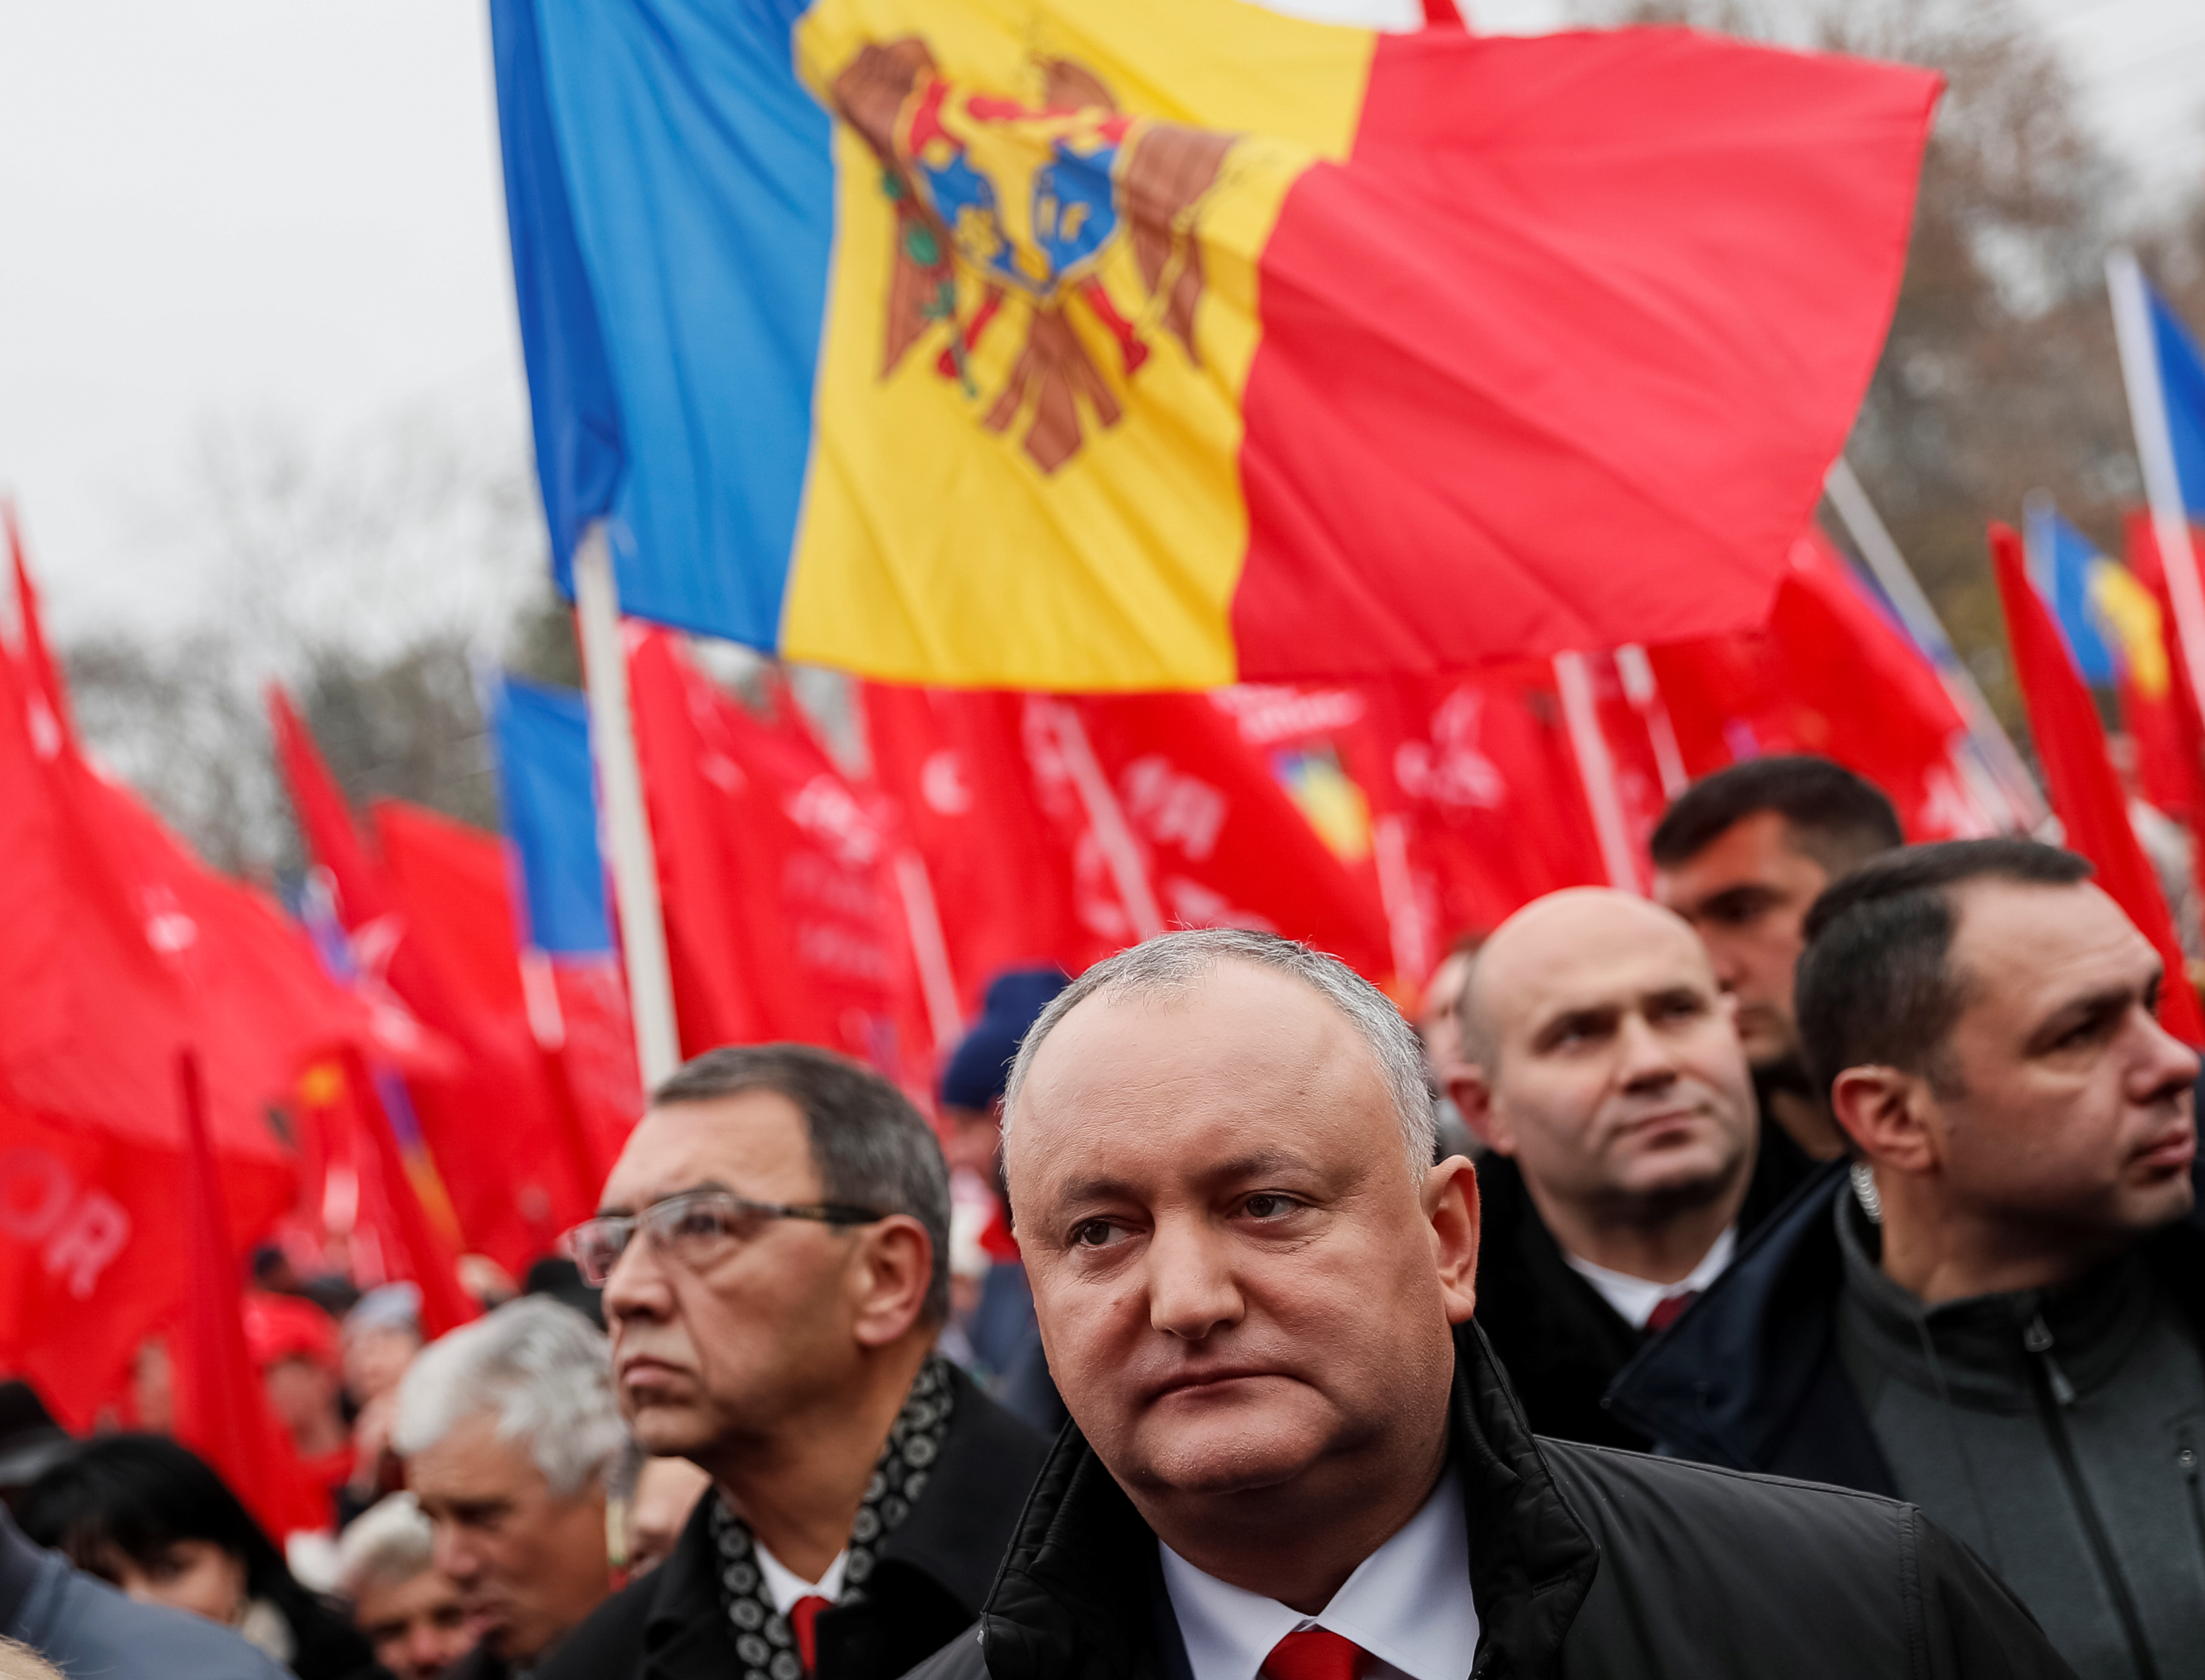 Moldova has Become a Geopolitical Battleground between Russia and the